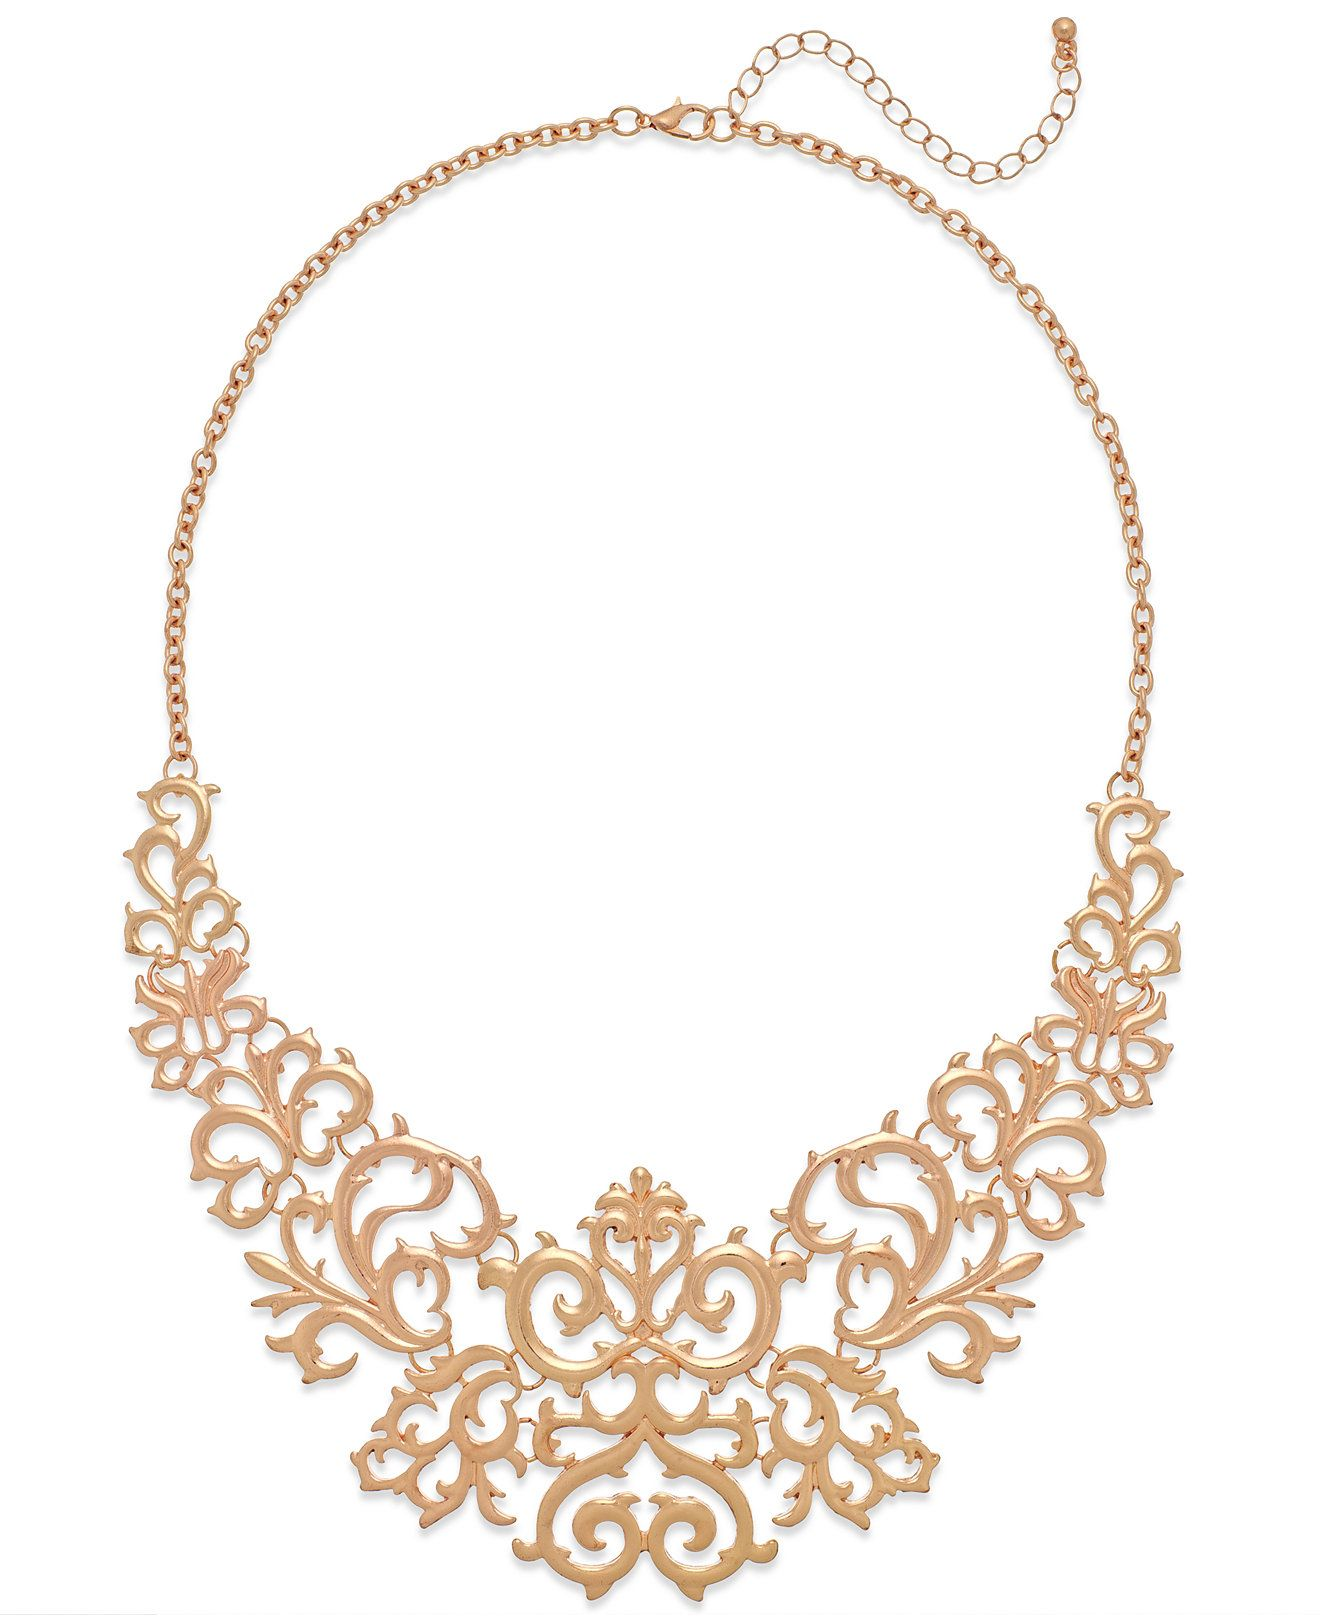 Macy's Rose Gold-Tone Lace Bib Necklace - Fashion Necklaces - Jewelry & Watches - Macy's